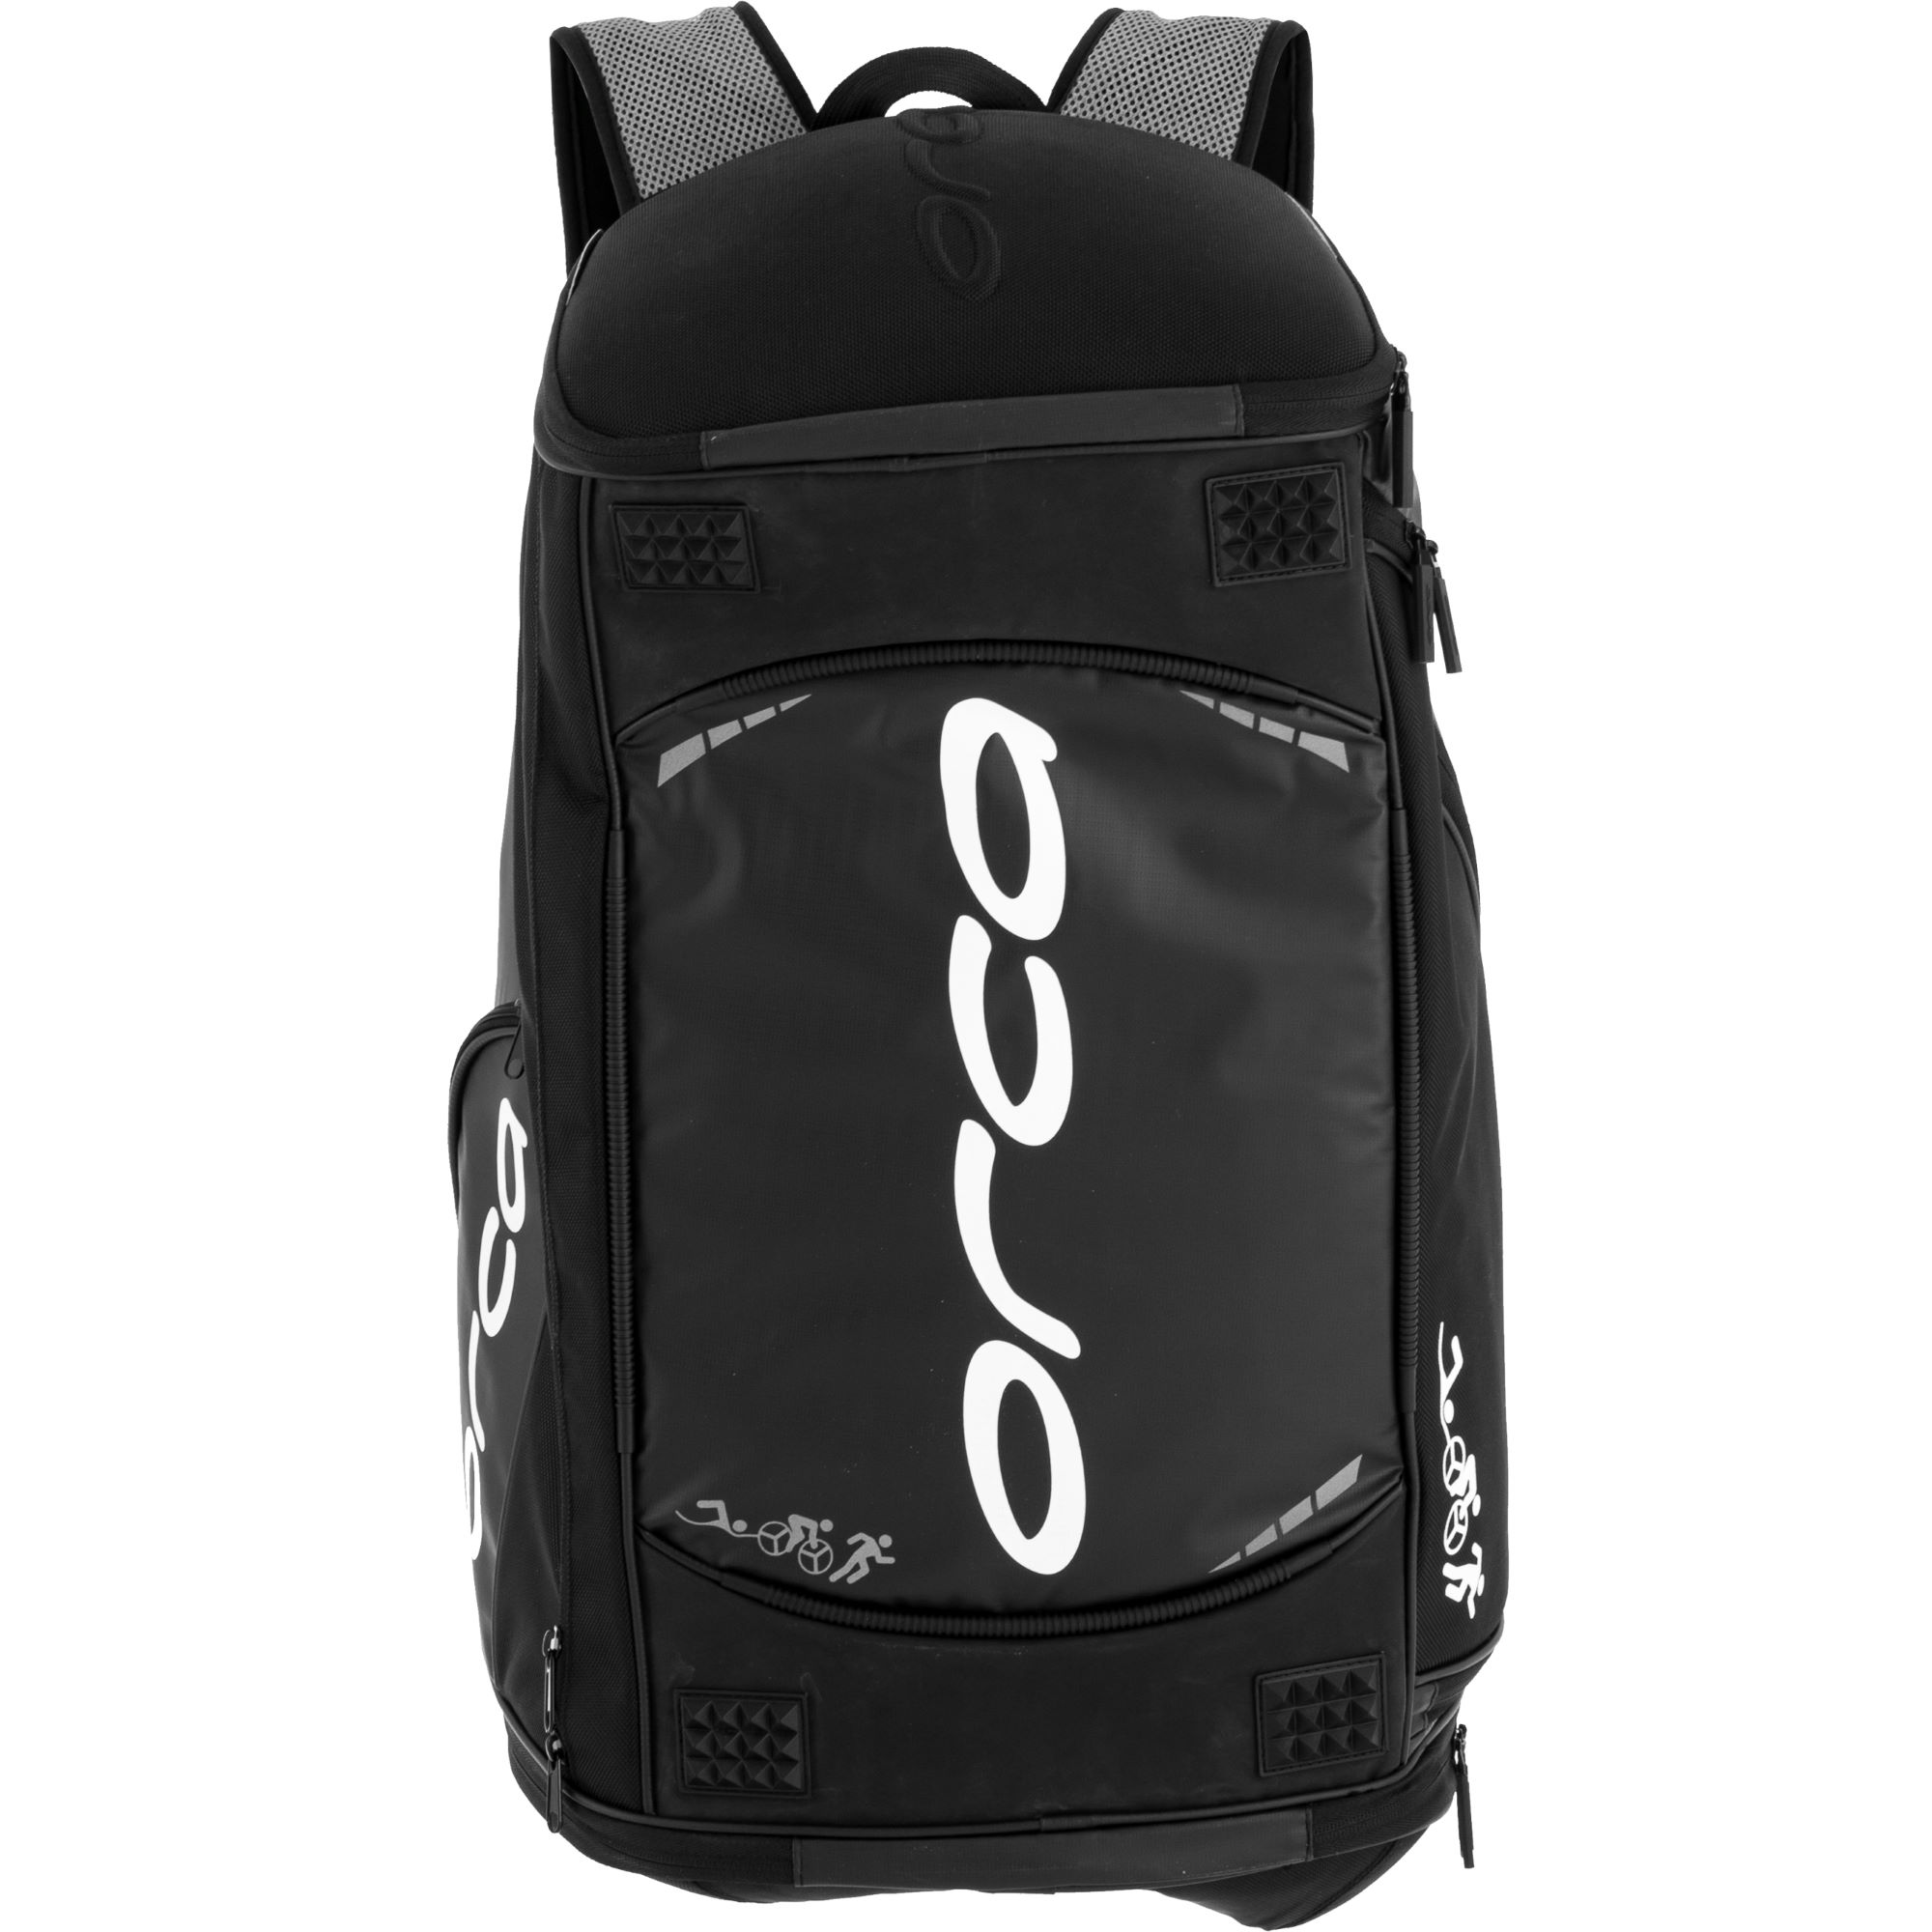 http://www.wigglestatic.com/product-media/5360103798/Orca-Triathlon-Transition-Bag-Rucksacks-Black-2015-DVAR0001-0.jpg?w=2000&h=2000&a=7